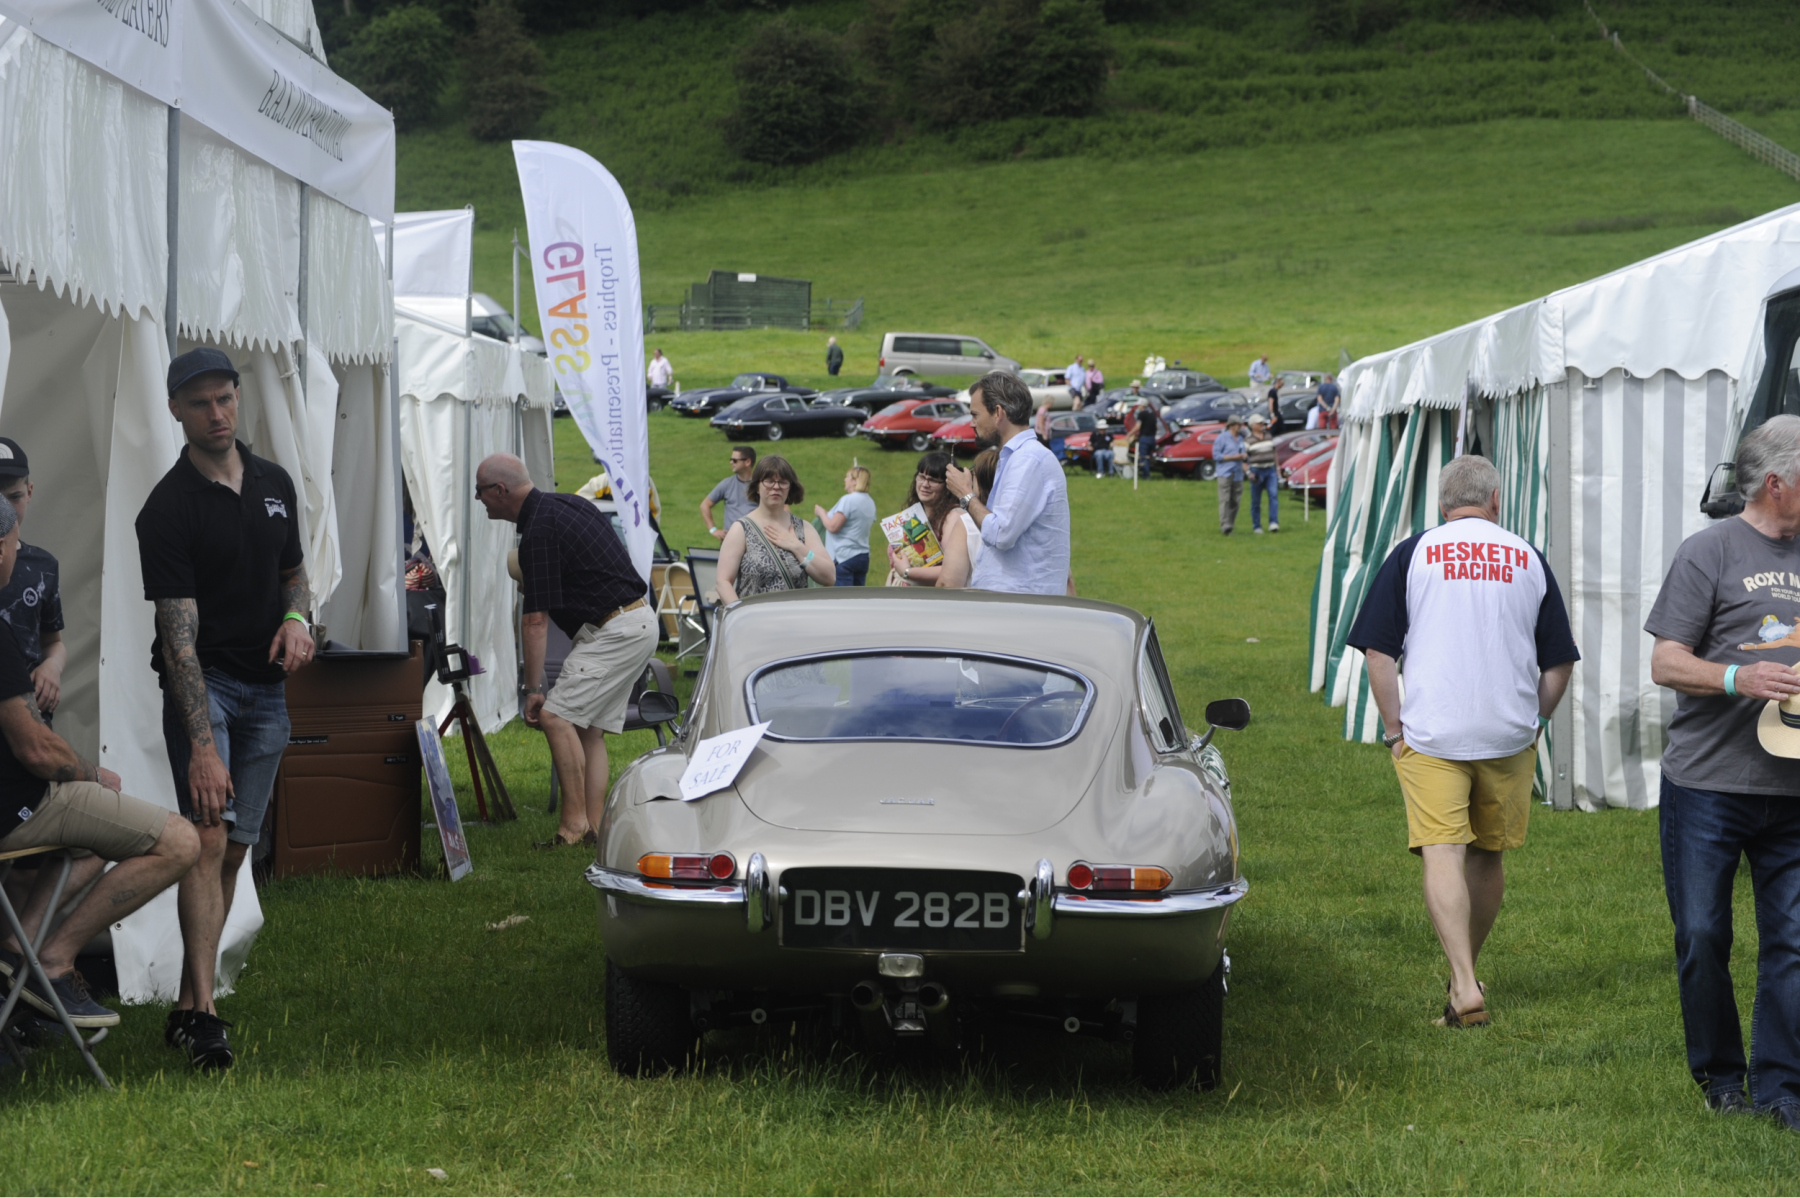 E-type-60-Saturday-photo-by-Abigail-Humphries-234